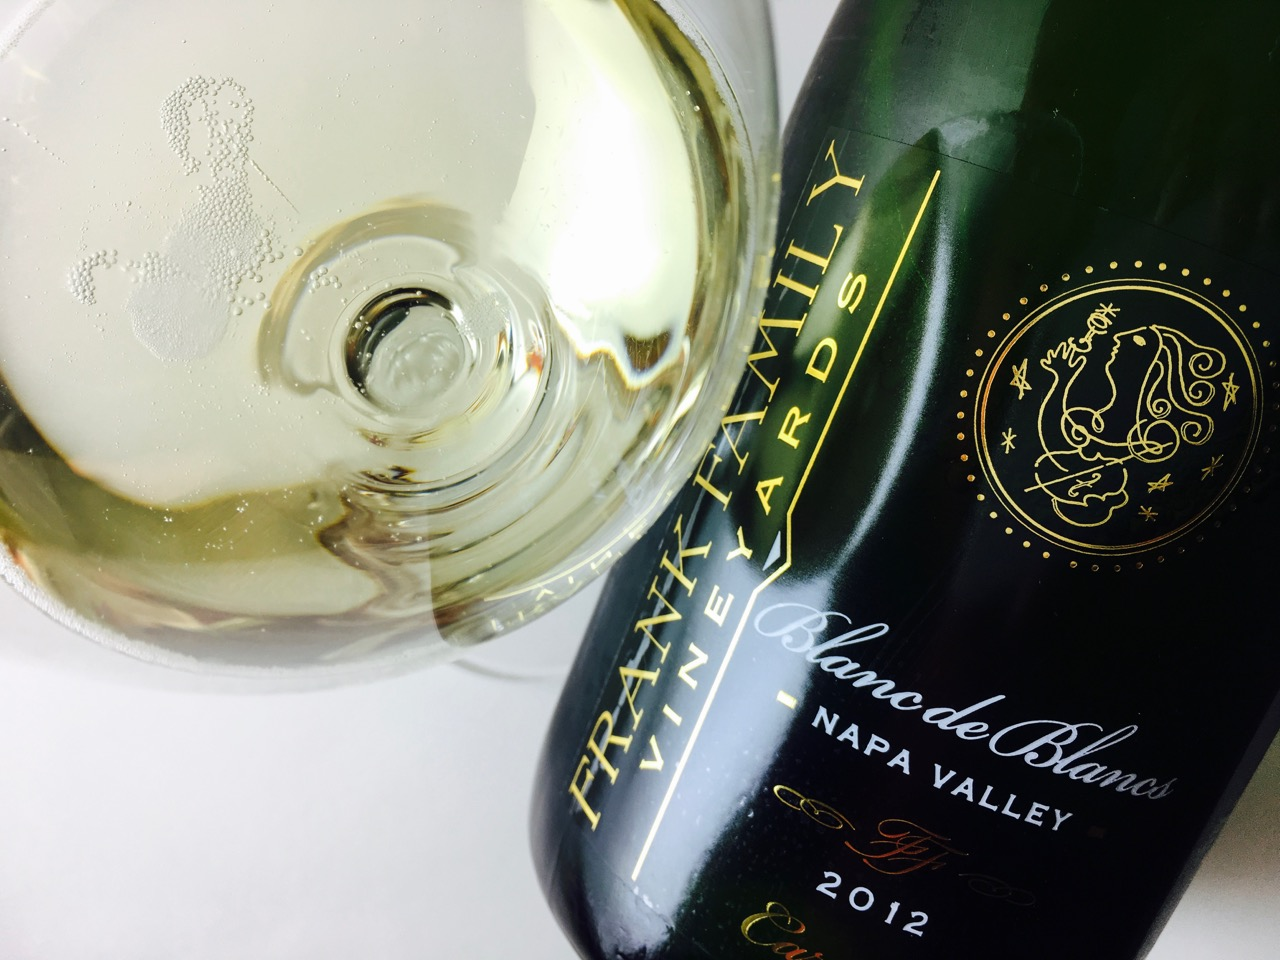 2012 Frank Family Vineyards Blanc de Blancs Carneros